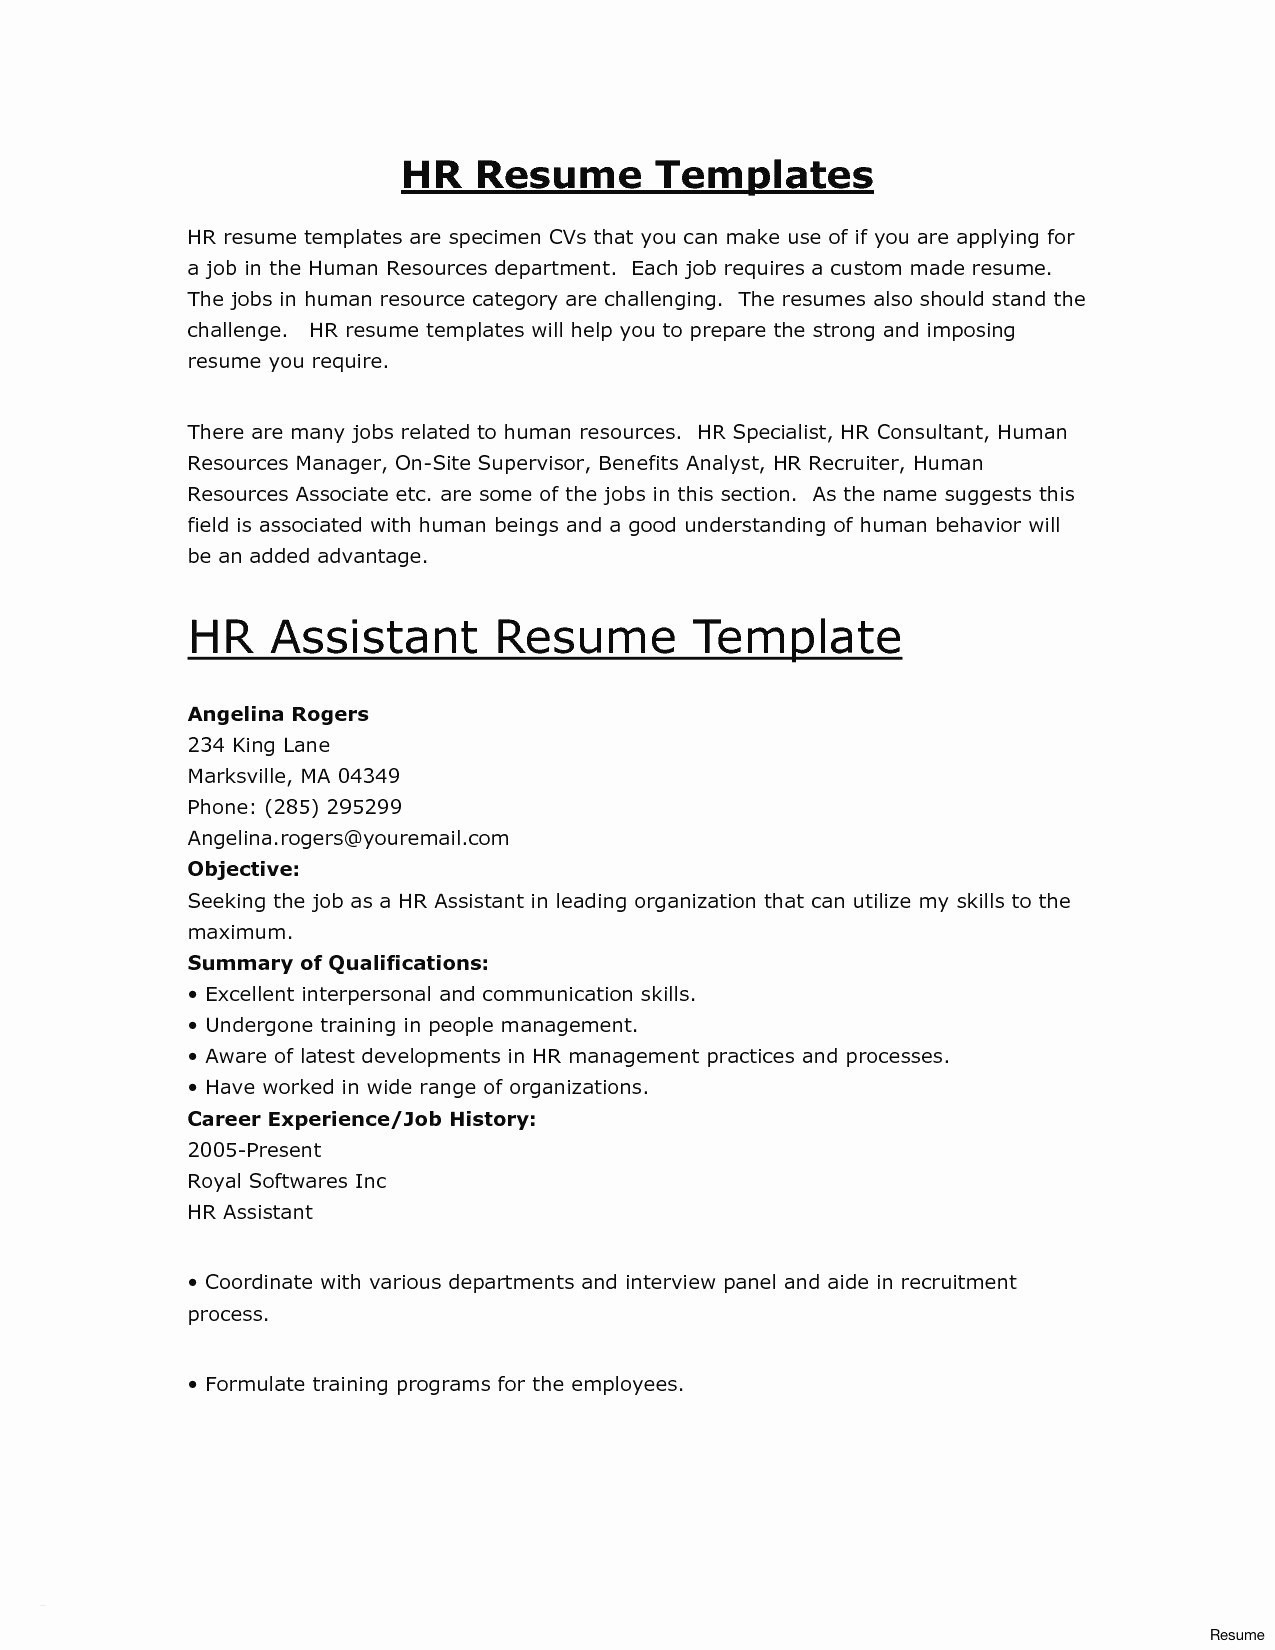 Post Your Resume - Post Your Resume Fresh Post A Resume Awesome Inspirational Actor